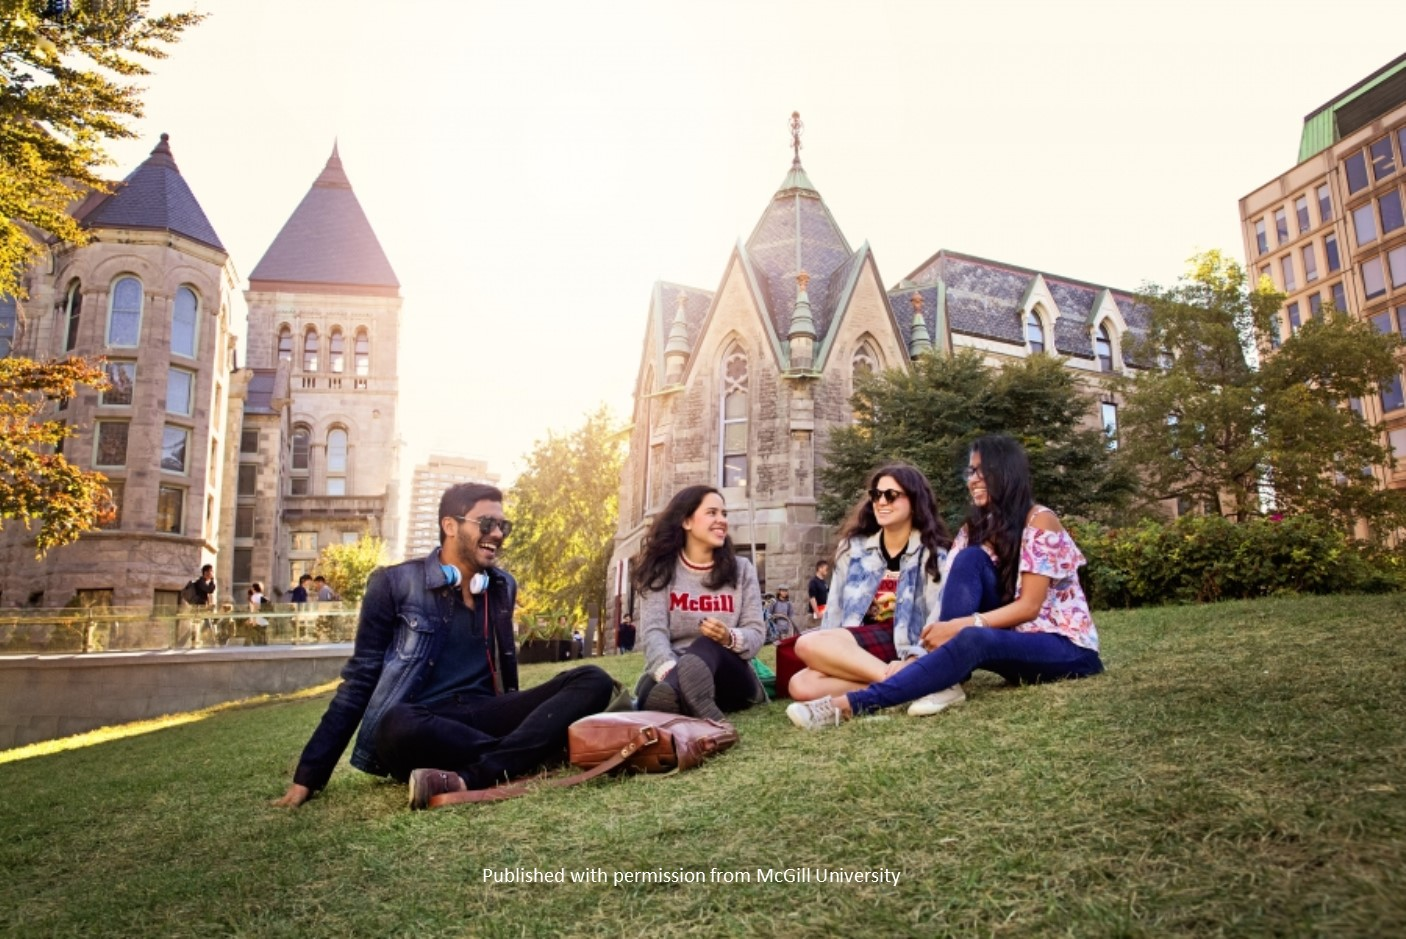 McGill University Students with permissi